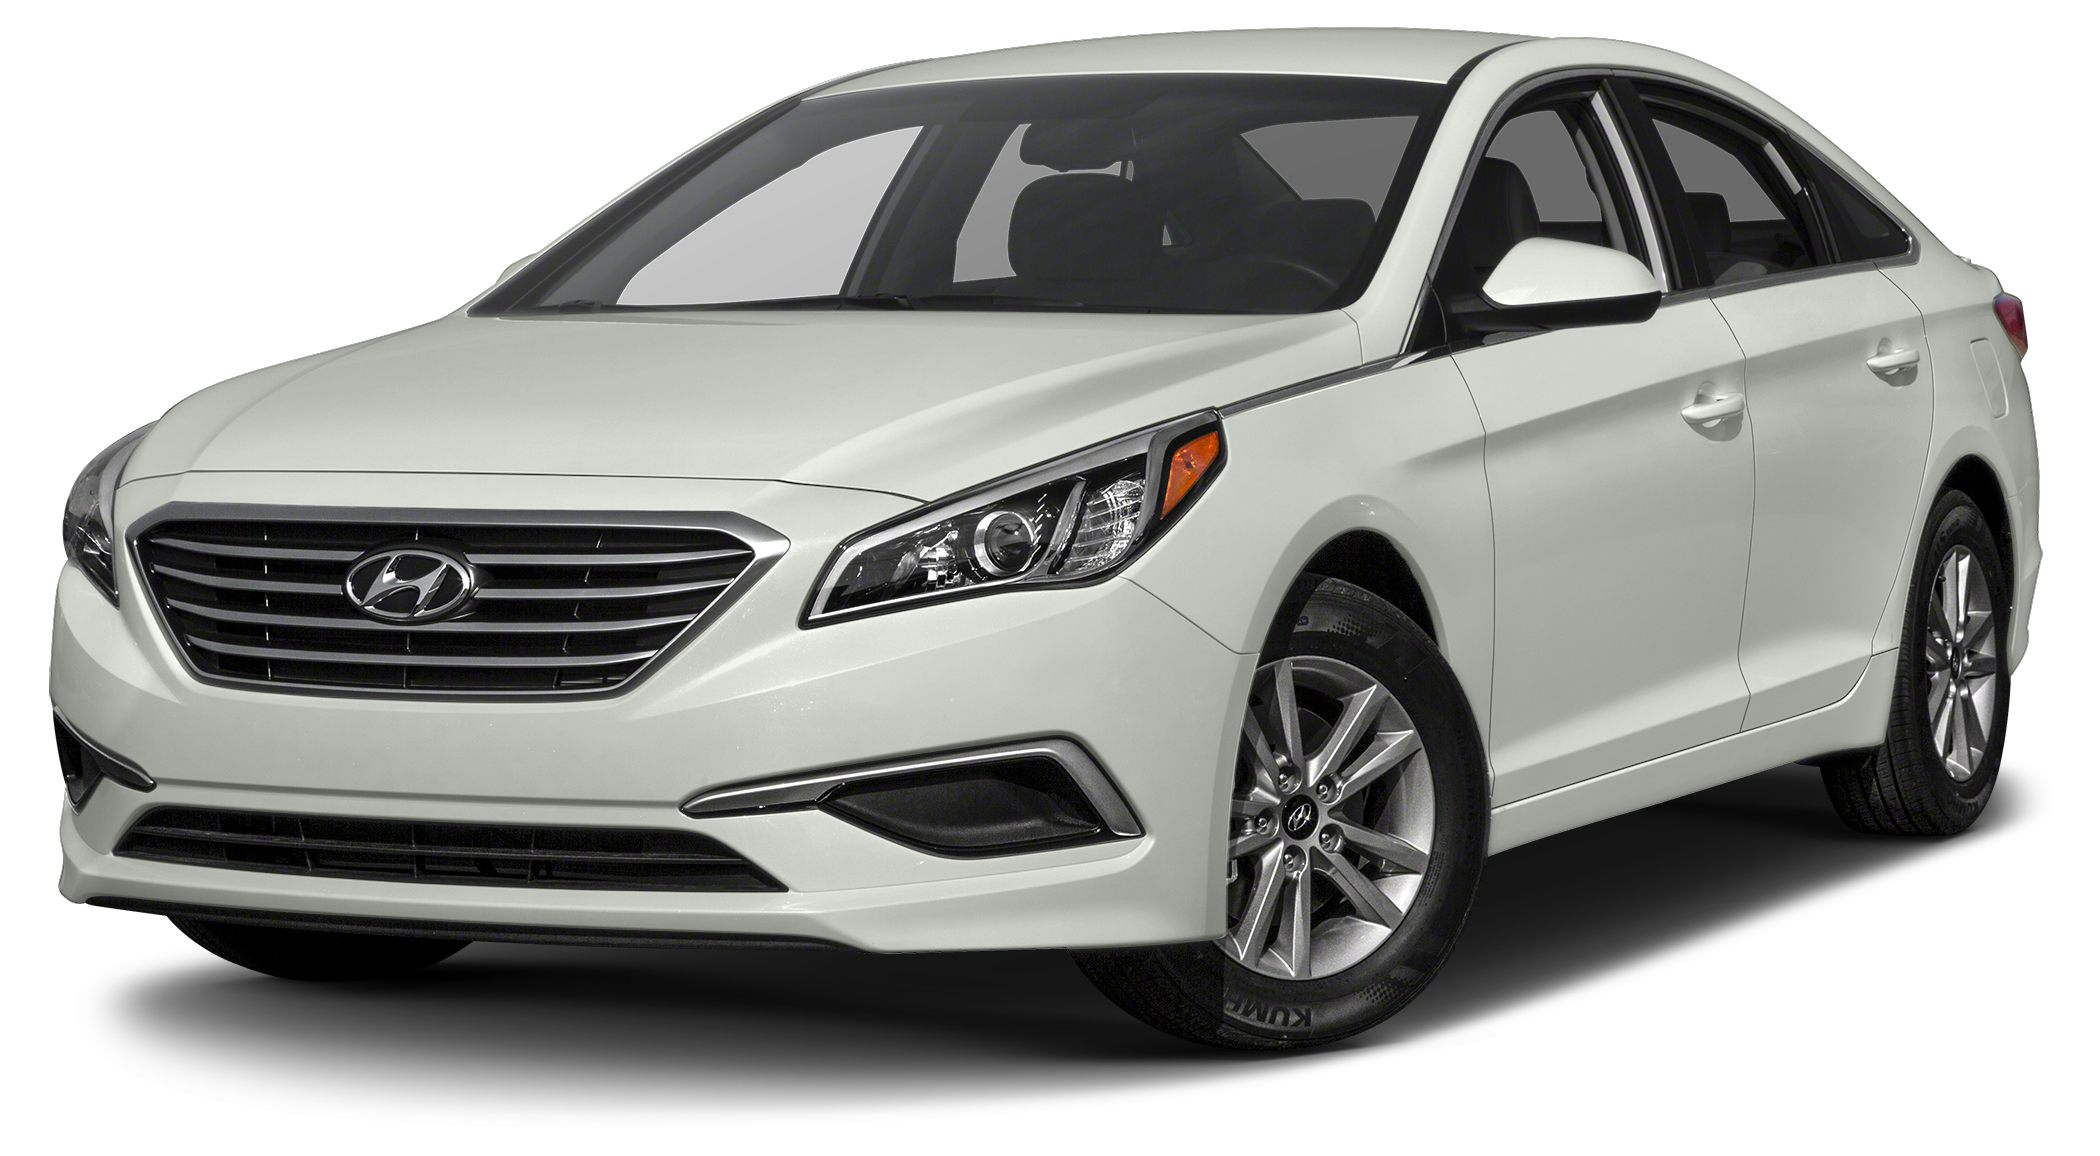 2016 Hyundai Sonata SE 2016 Hyundai Sonata SE in White Hands Free Calling and ONE OWNER All